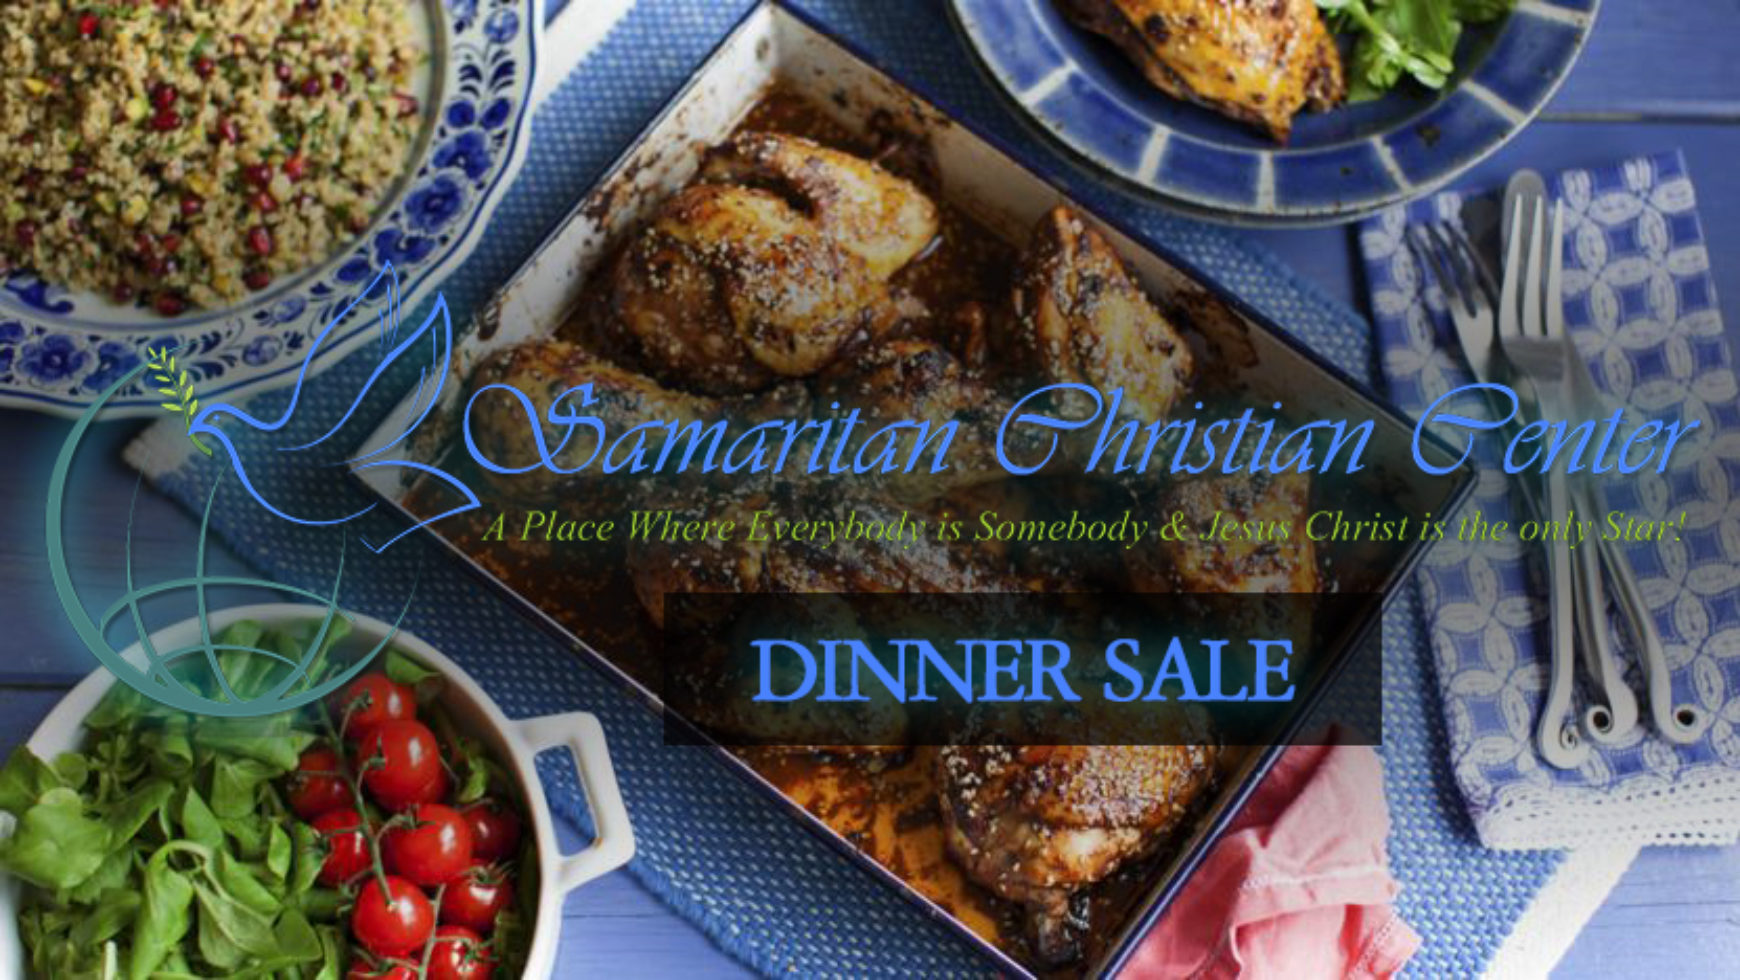 Samaritan Christian Center Dinner Sale